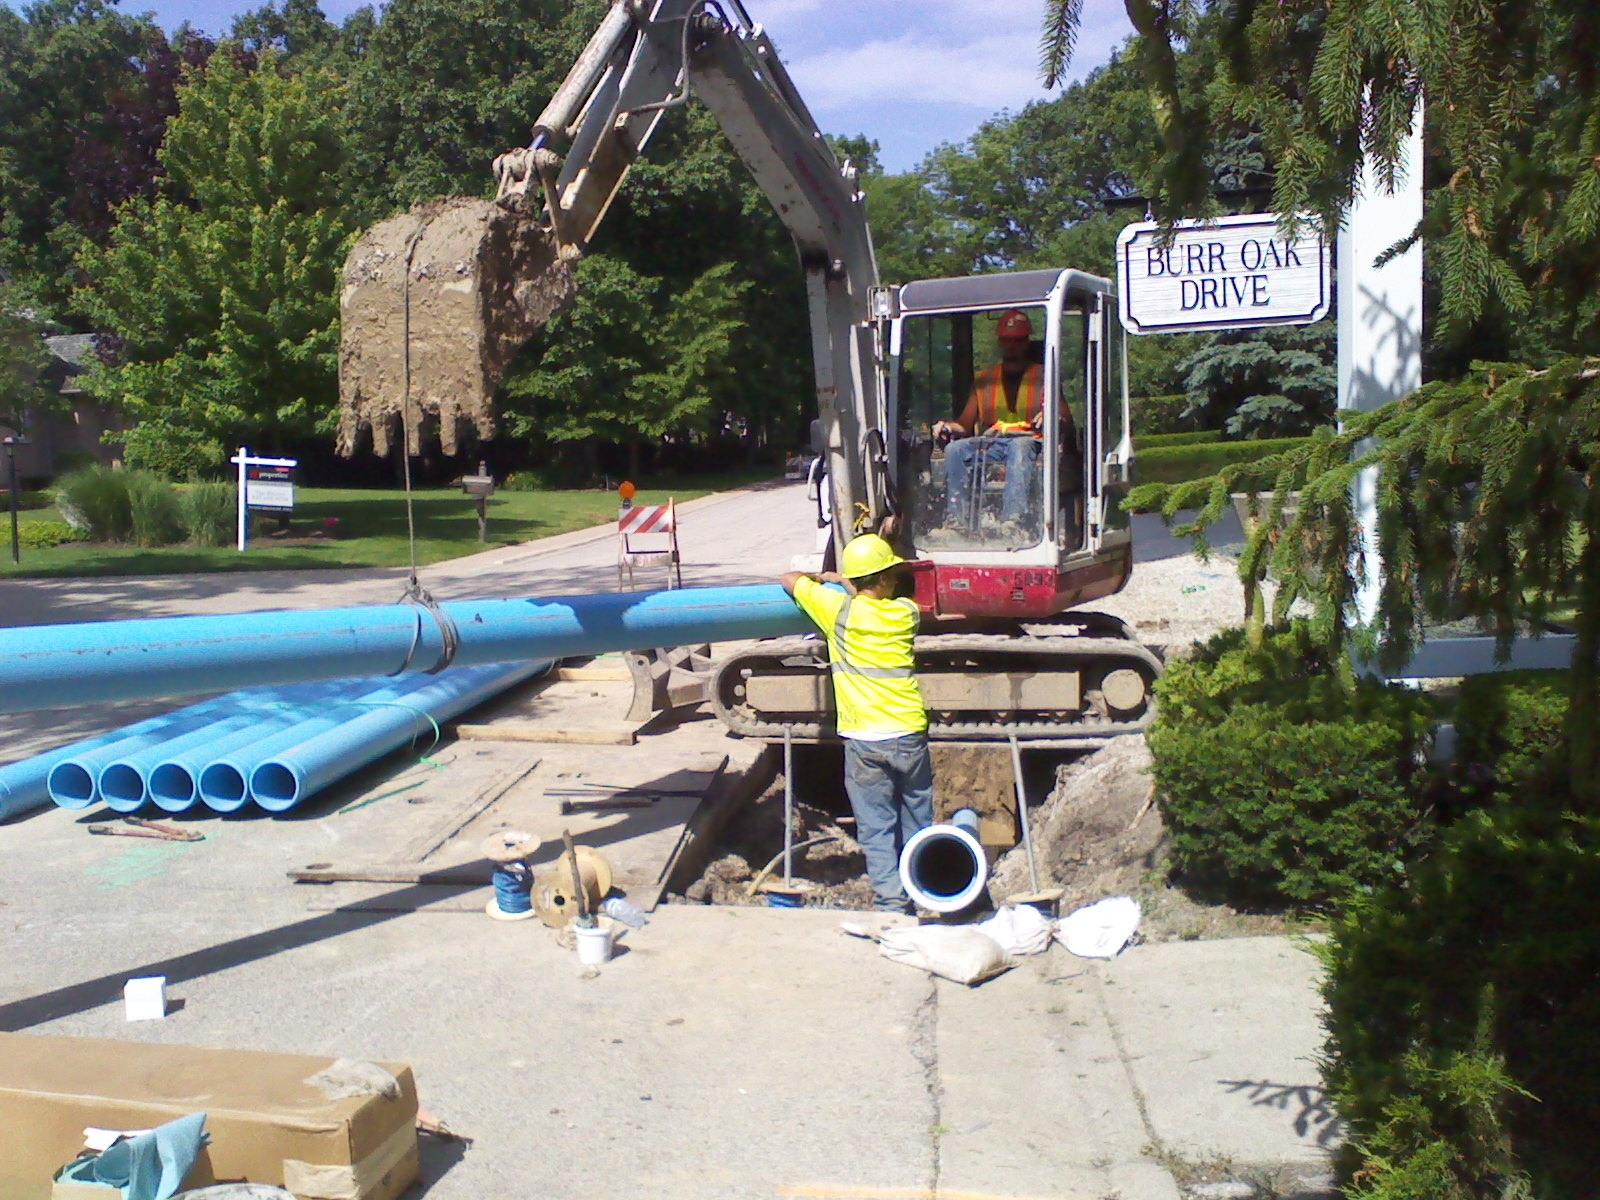 RJ Underground Completed The Directional Drilling Of The 8 Inch PVC Water  Main Along The Project Site. A. Lamp Concrete Contractors Began Underground  ...